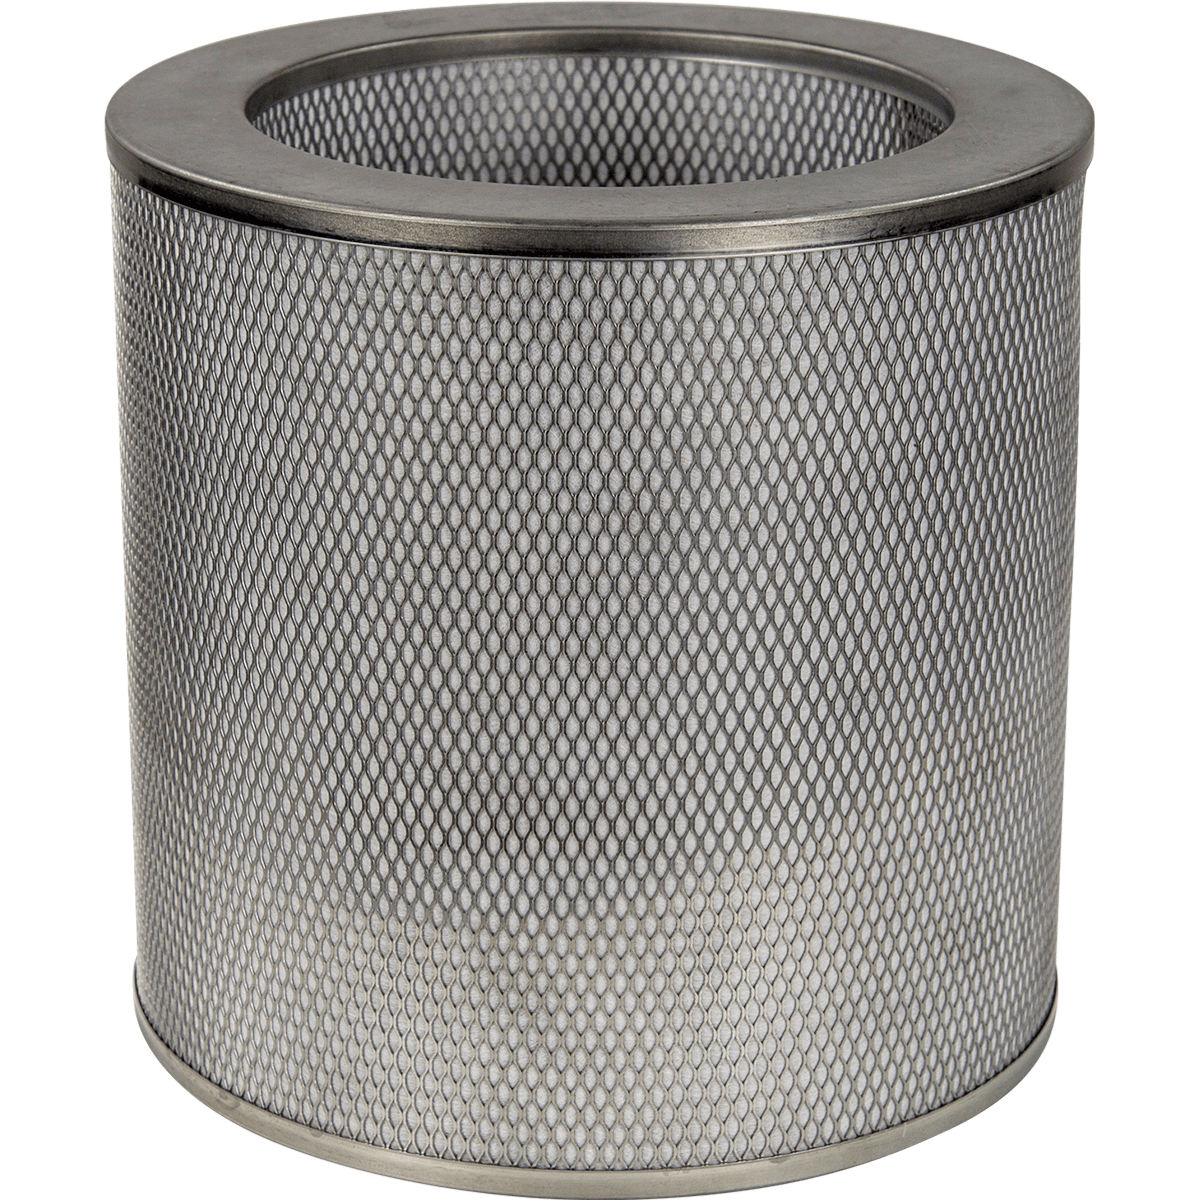 Image of Airpura Replacement Super Blend 2 Inch Carbon Filter